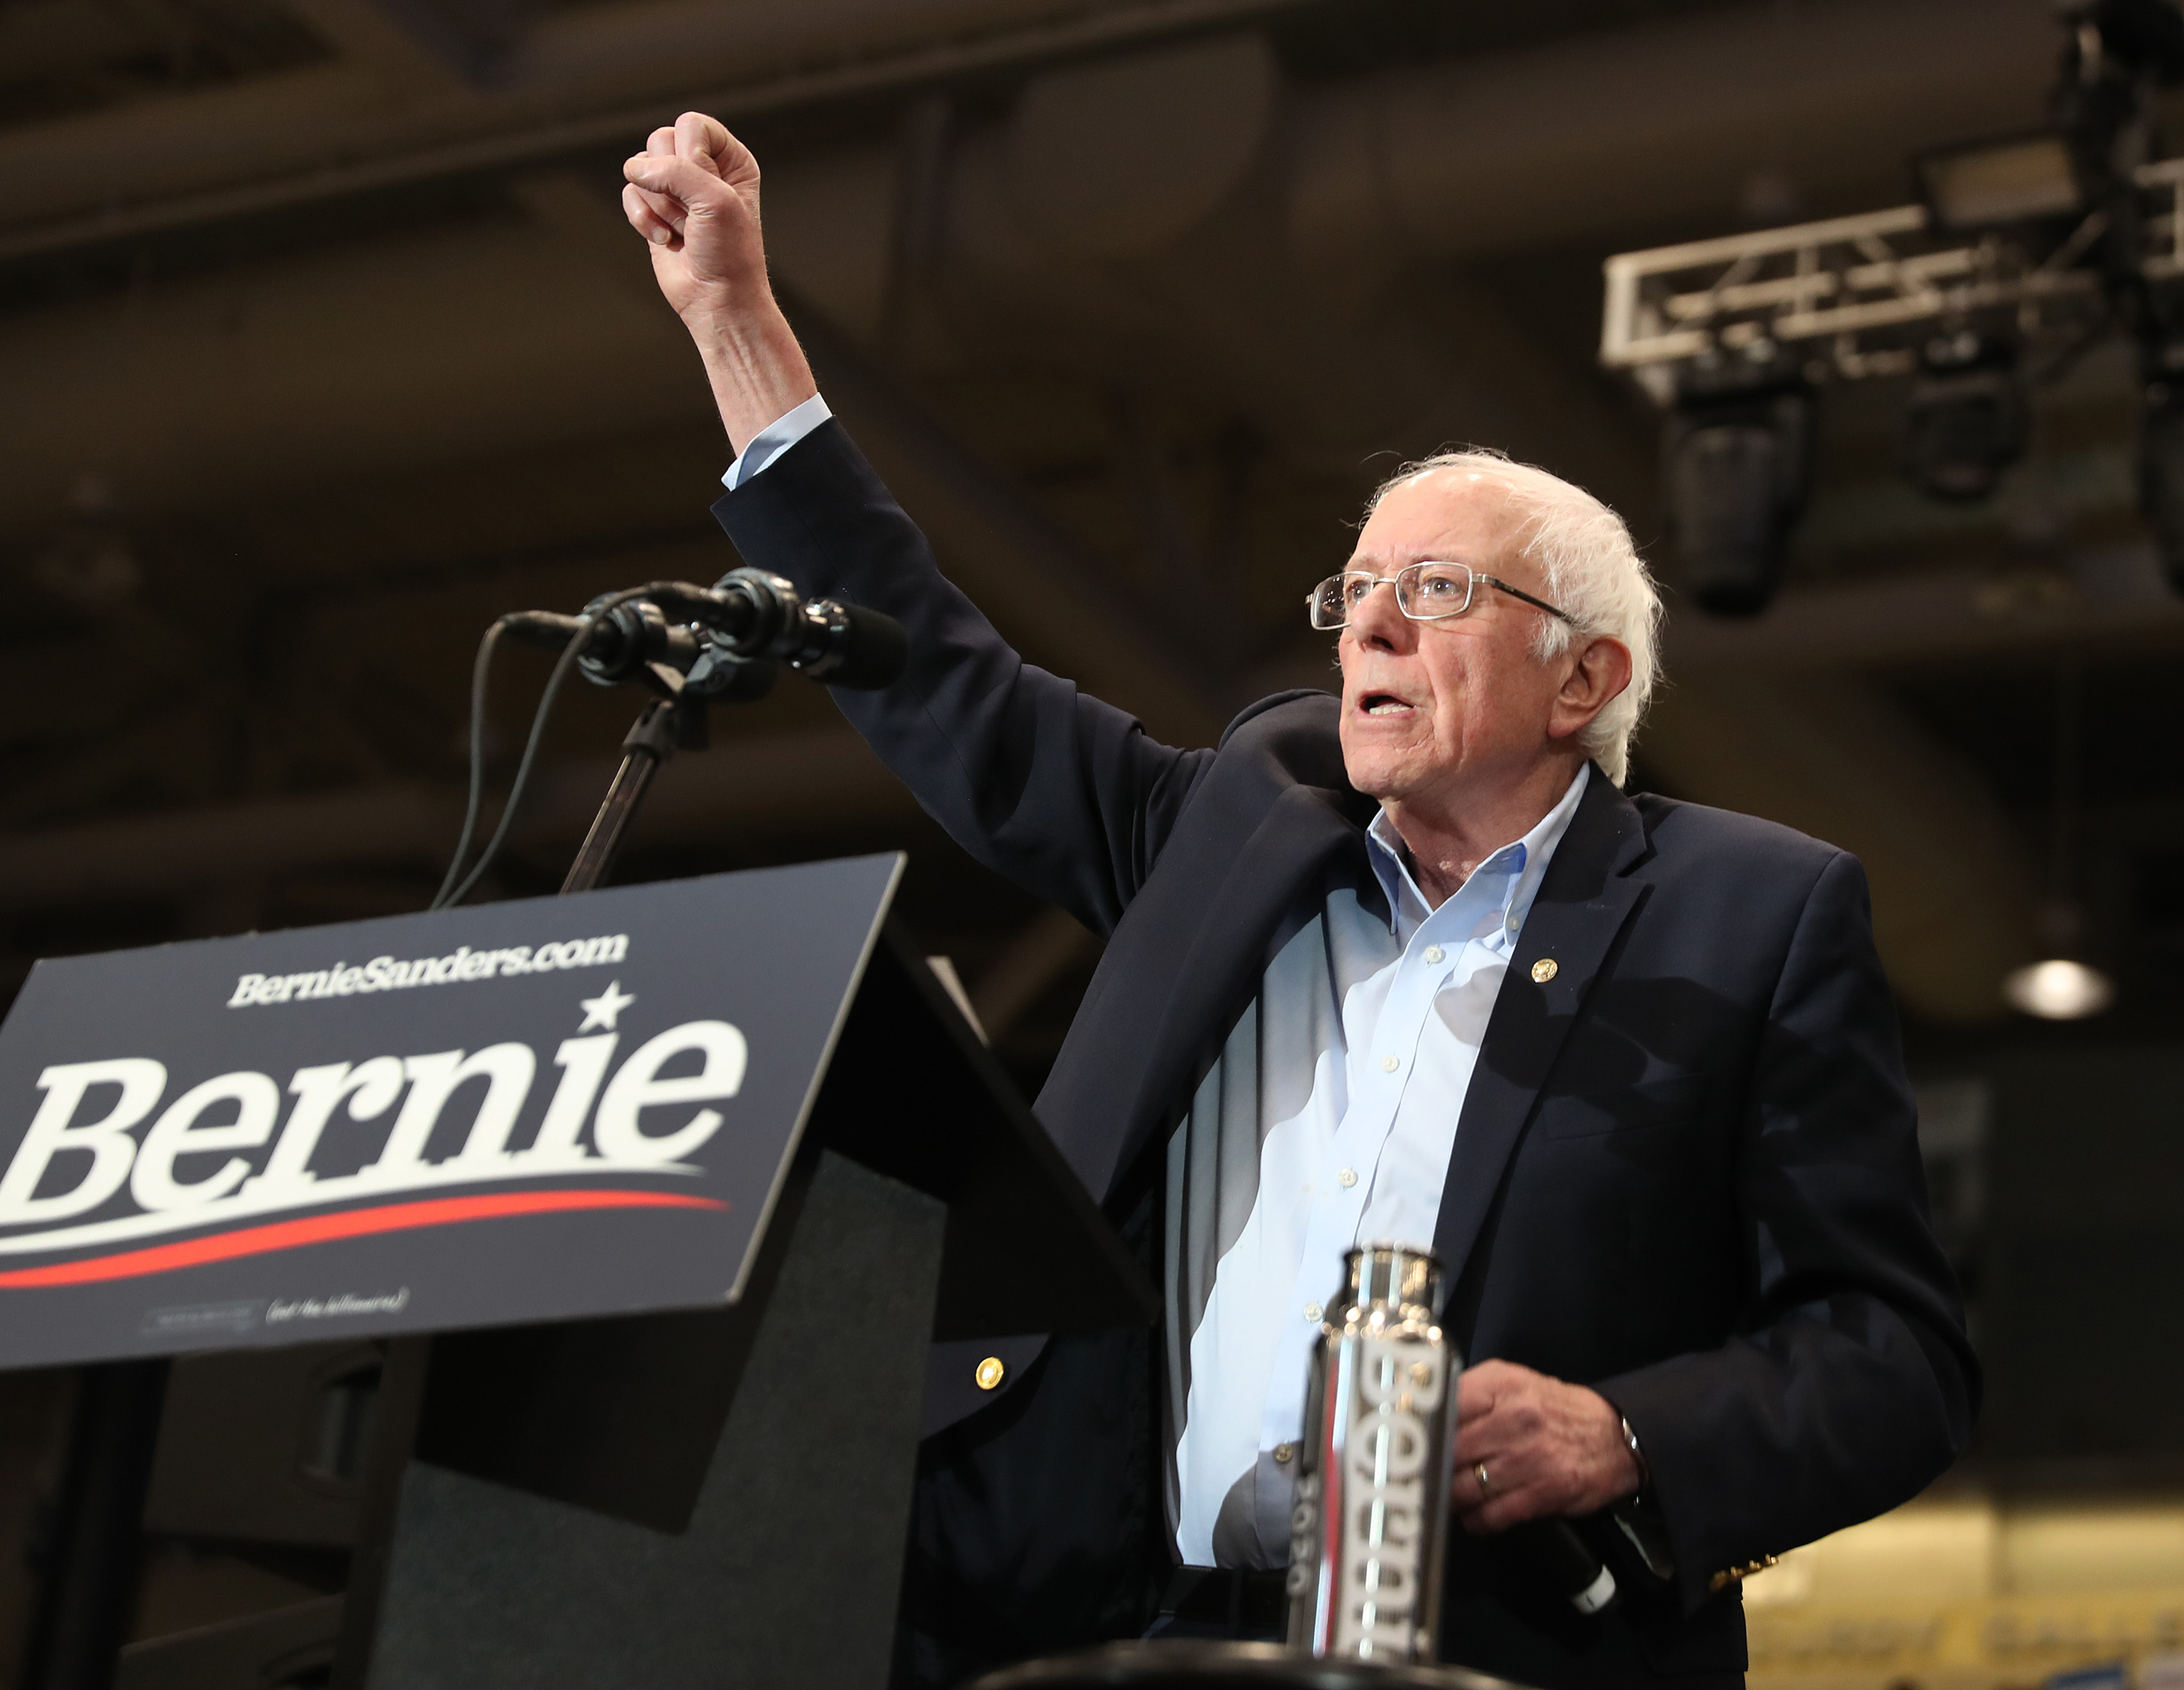 DURHAM, NEW HAMPSHIRE - FEBRUARY 10: Democratic presidential candidate Sen. Bernie Sanders (I-VT) speaks during a campaign event at the Whittemore Center Arena on February 10, 2020 in Durham, New Hampshire. The state's Democratic primary is tomorrow. (Photo by Joe Raedle/Getty Images)